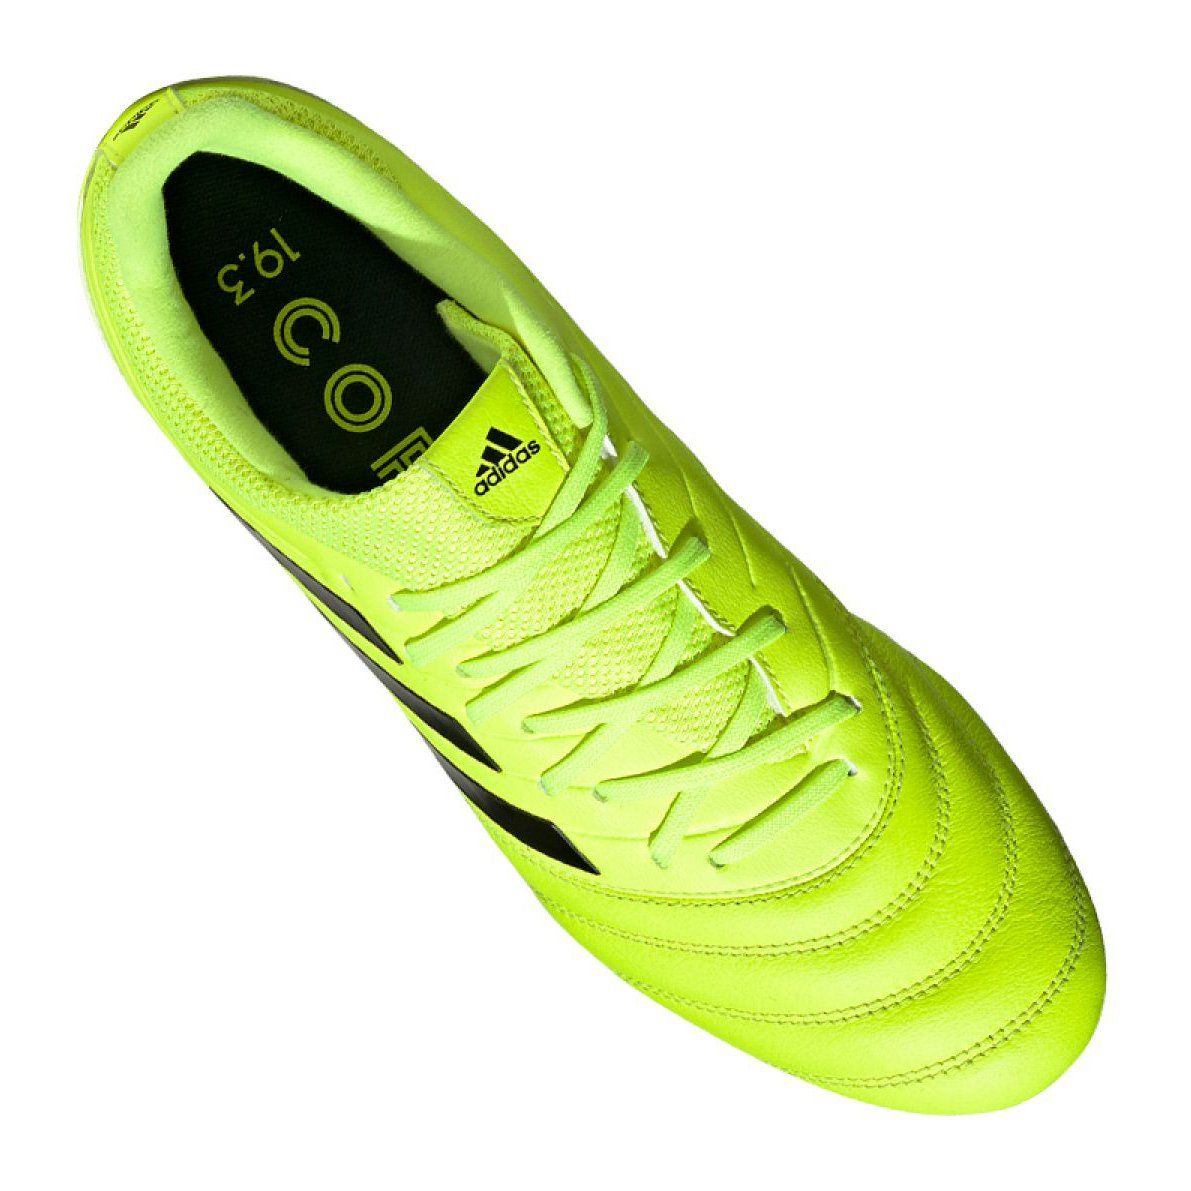 Adidas copa 193 ag ig m ee8152 football shoes yellow